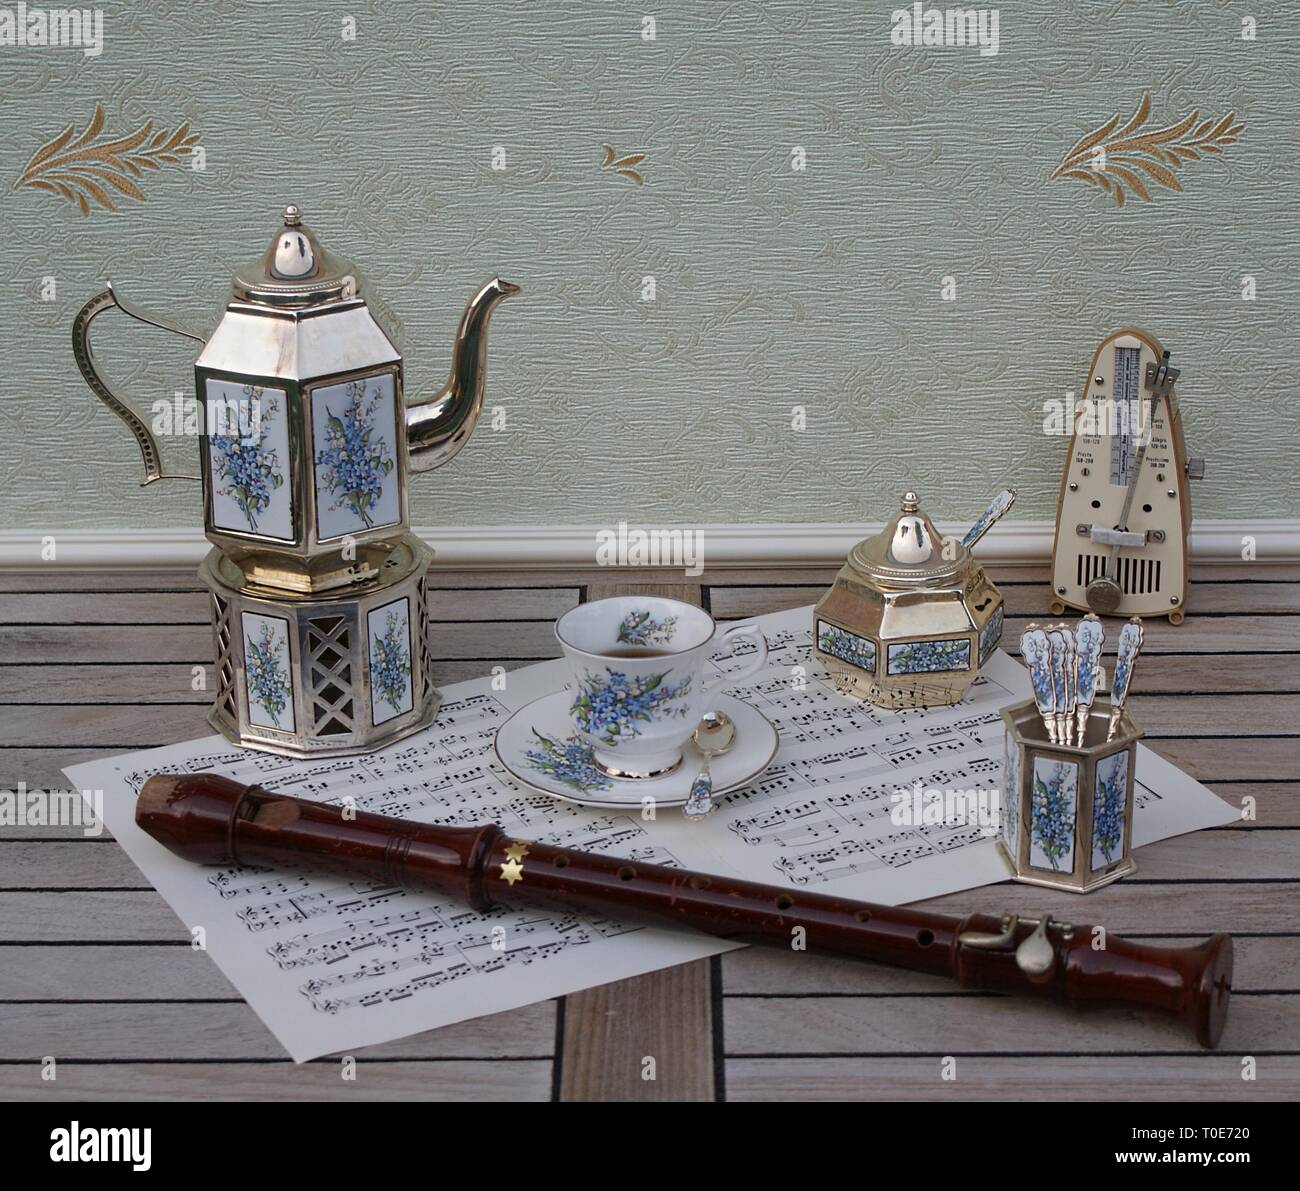 English tea set, silver-plated teapot on a silver stove, spoon vase and teaspoon, sugar bowl, metronome for music, a block flute on a sheet of music - Stock Image